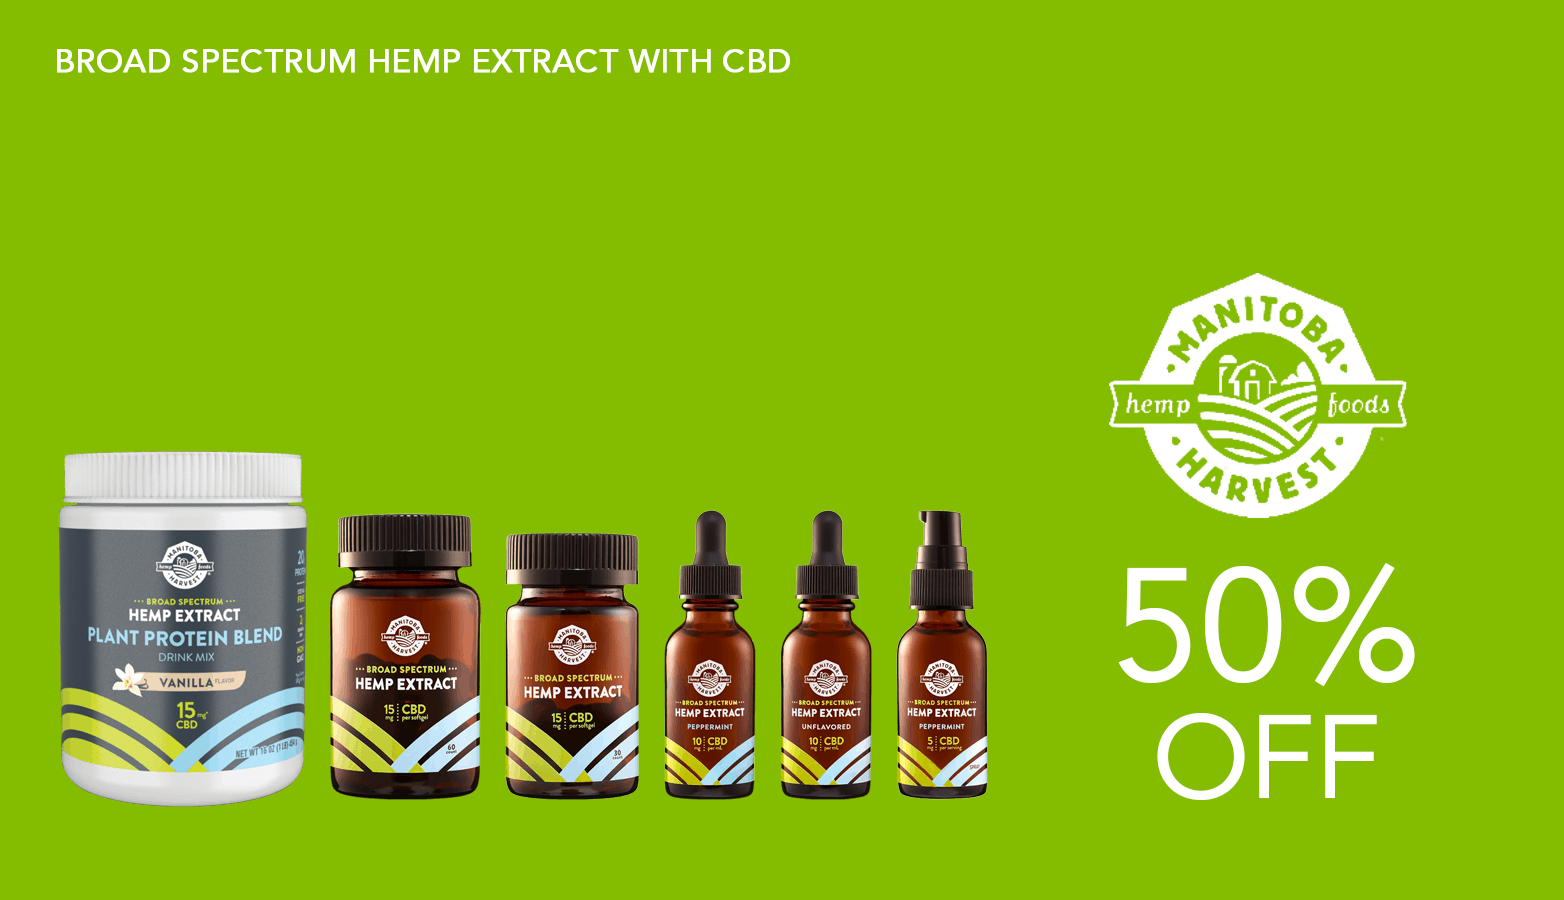 Manitoba Harvest CBD Coupon Code Website